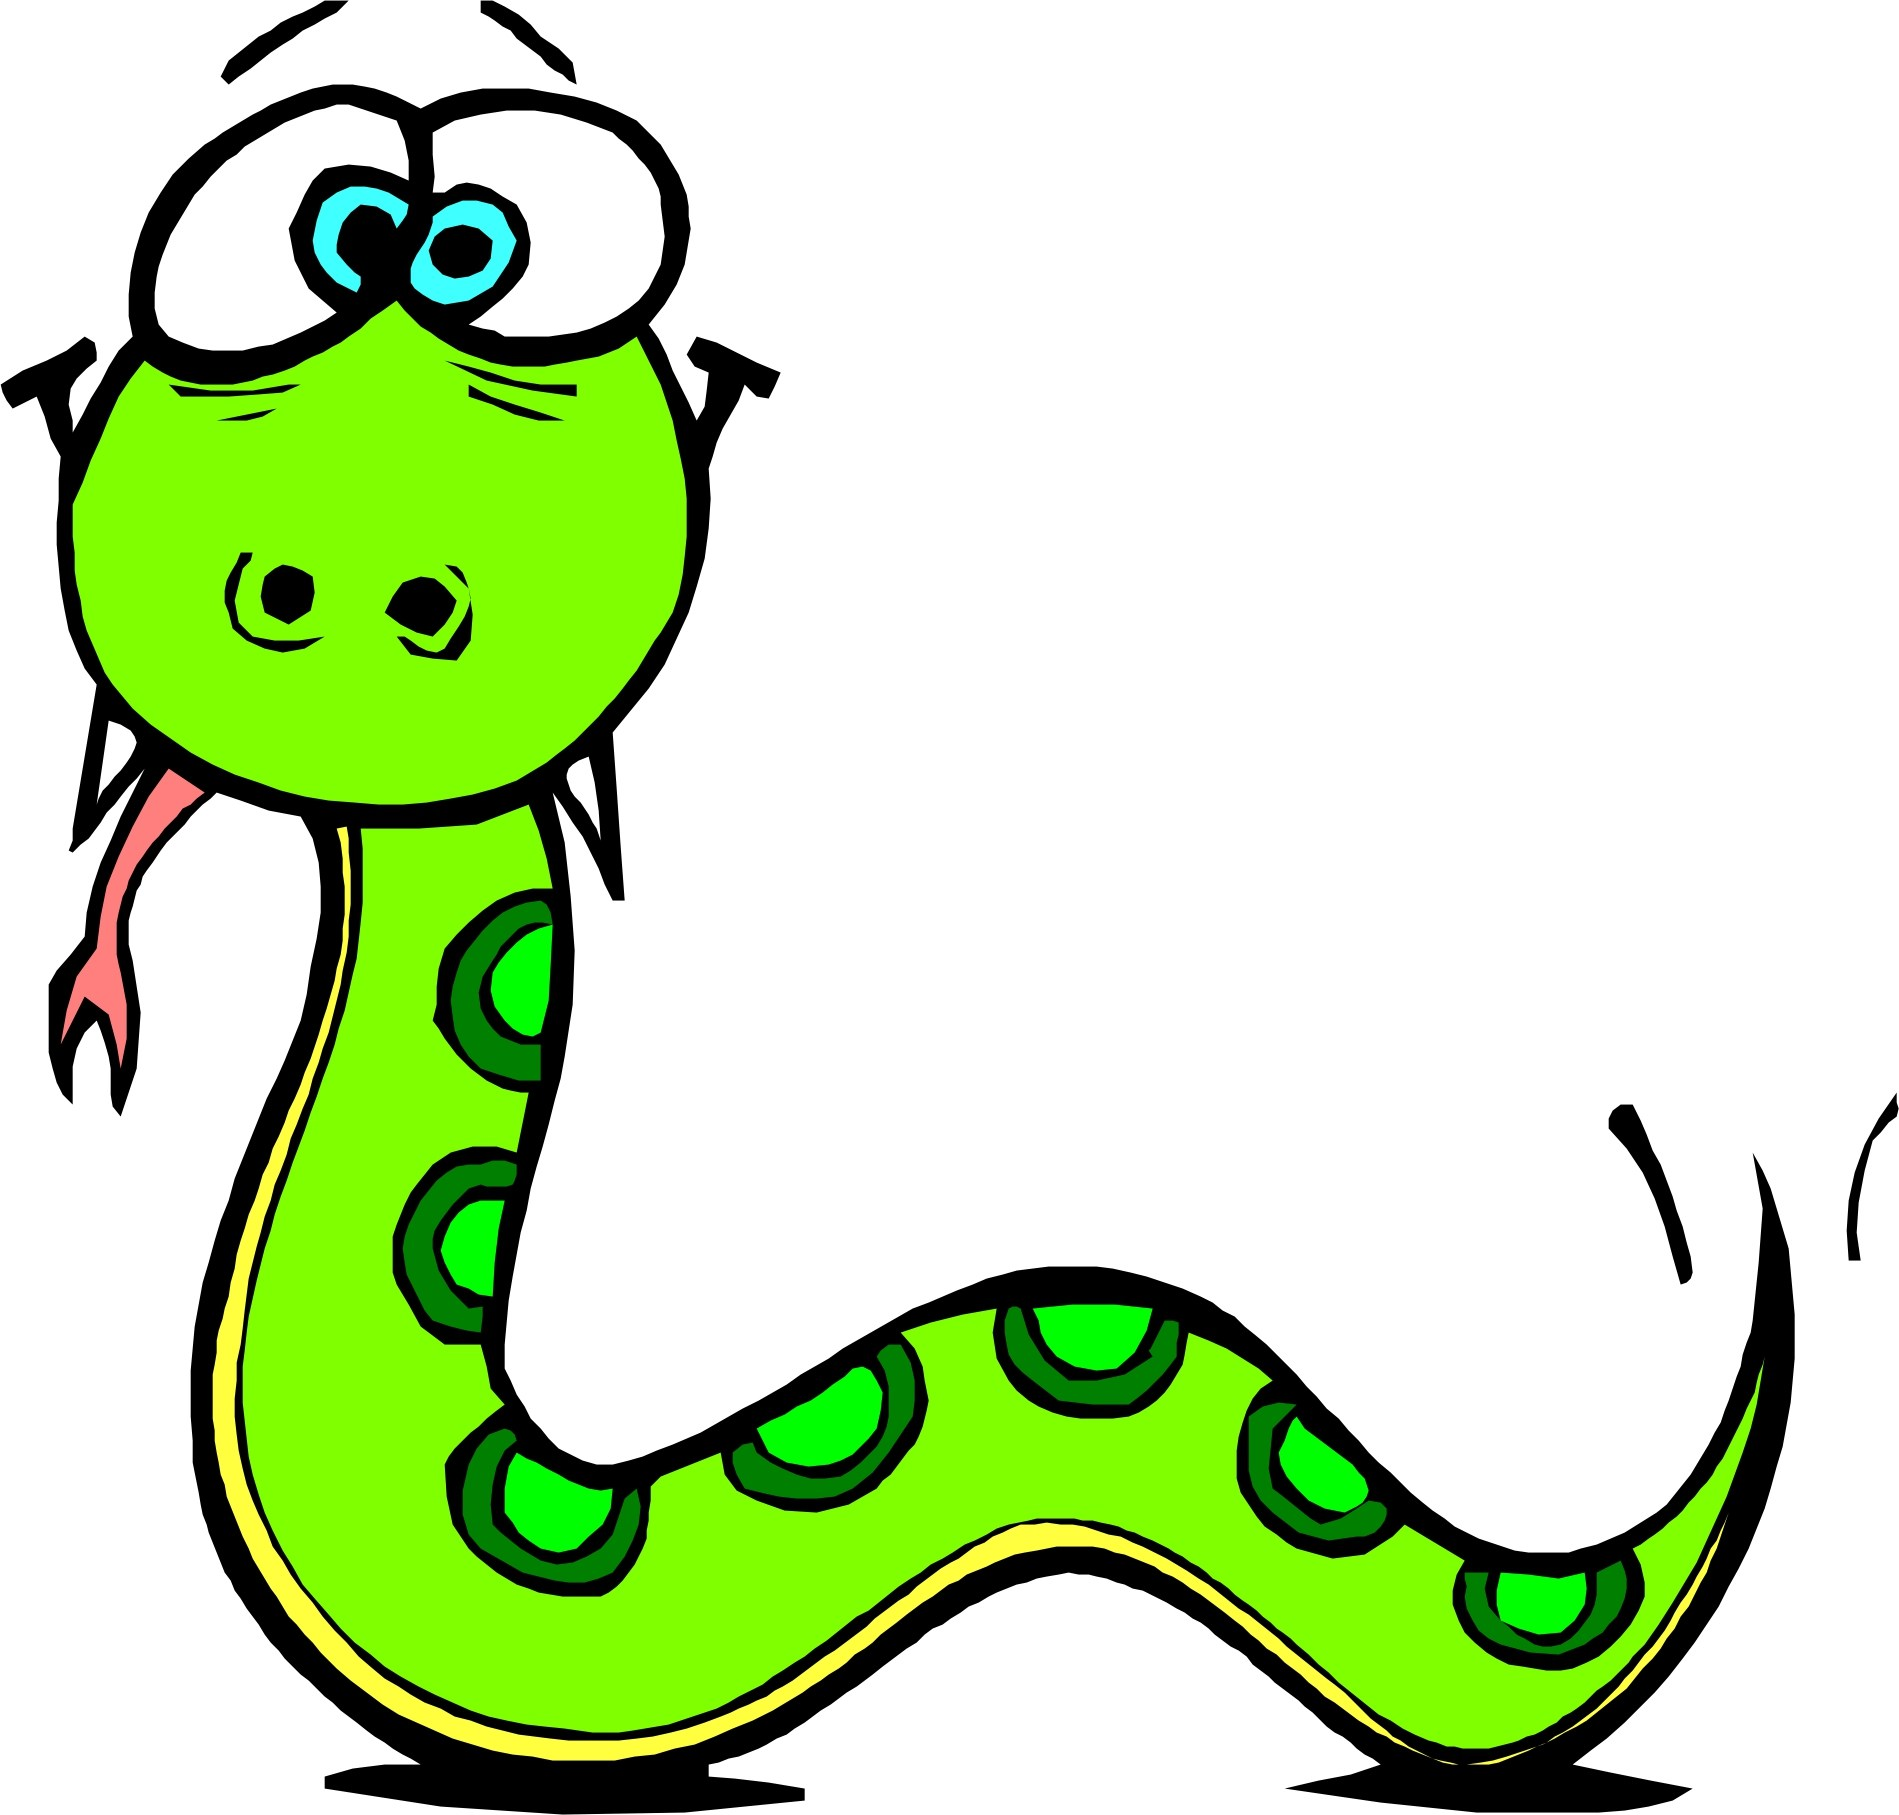 Funny snake clipart picture library download Funny snake clipart 8 » Clipart Portal picture library download